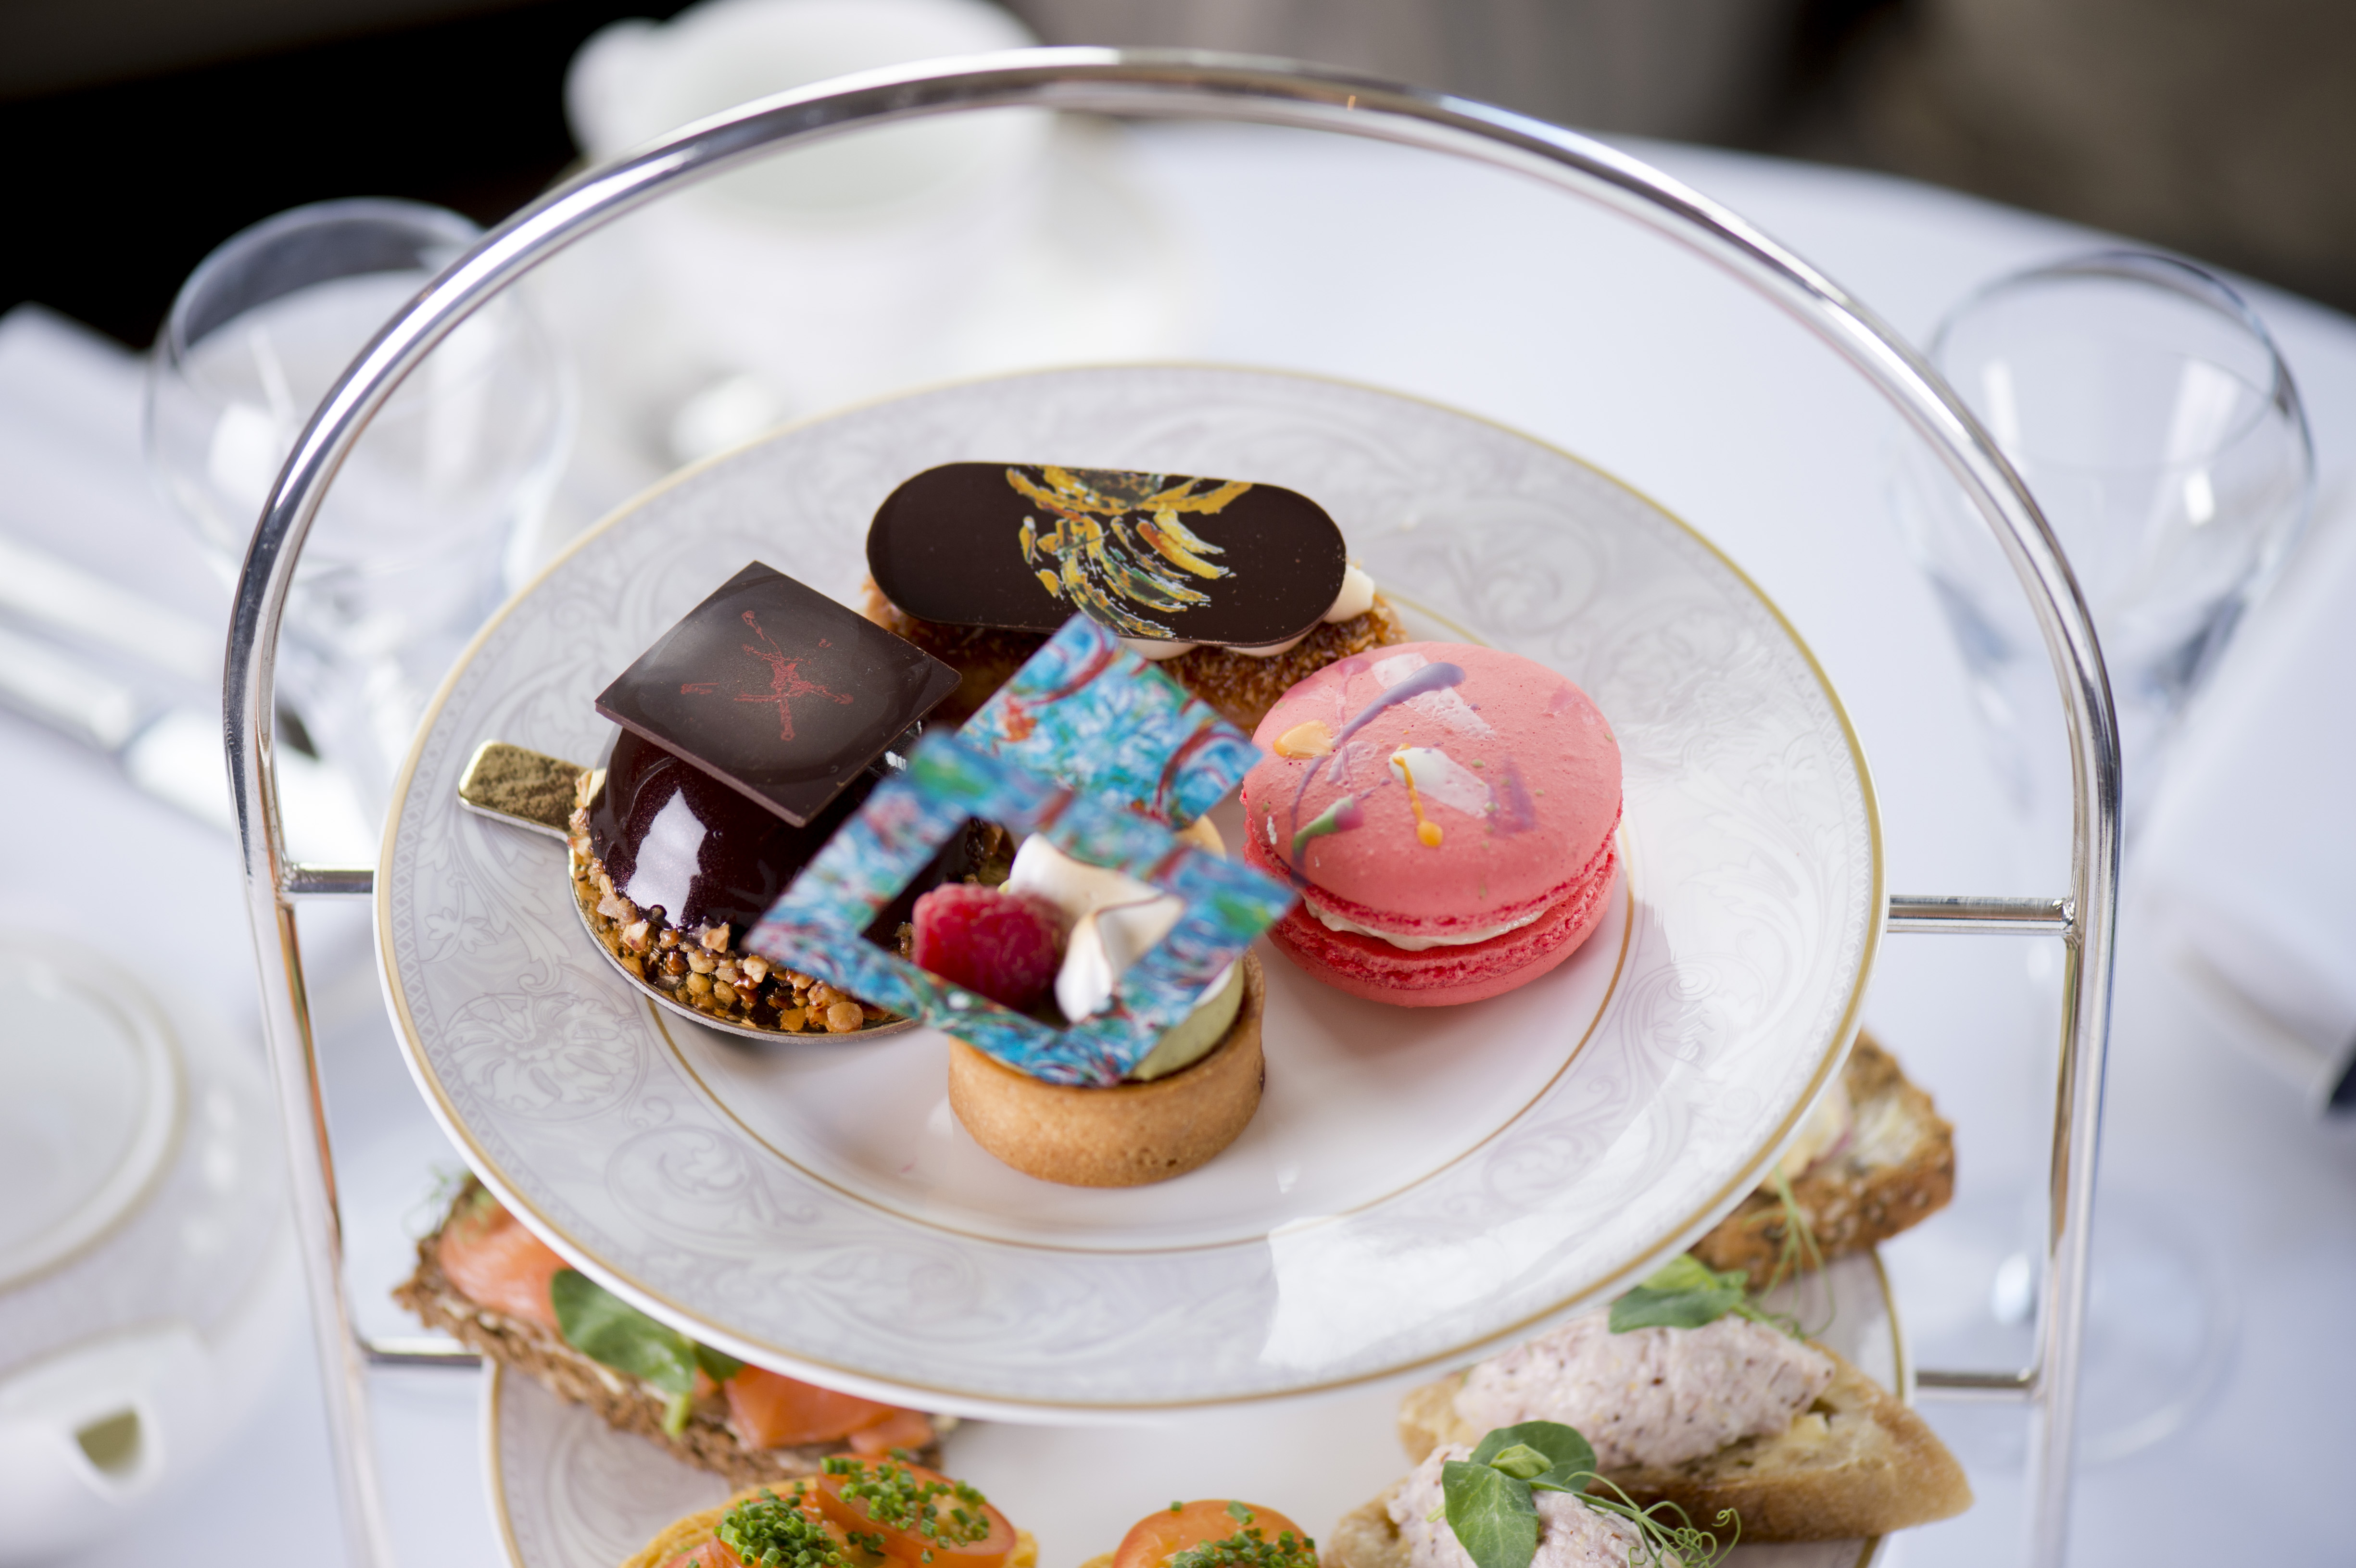 Michael Flatley artist inspired afternoon tea at The Shelbourne Hotel Dublin. Picture: Elaine Hill.